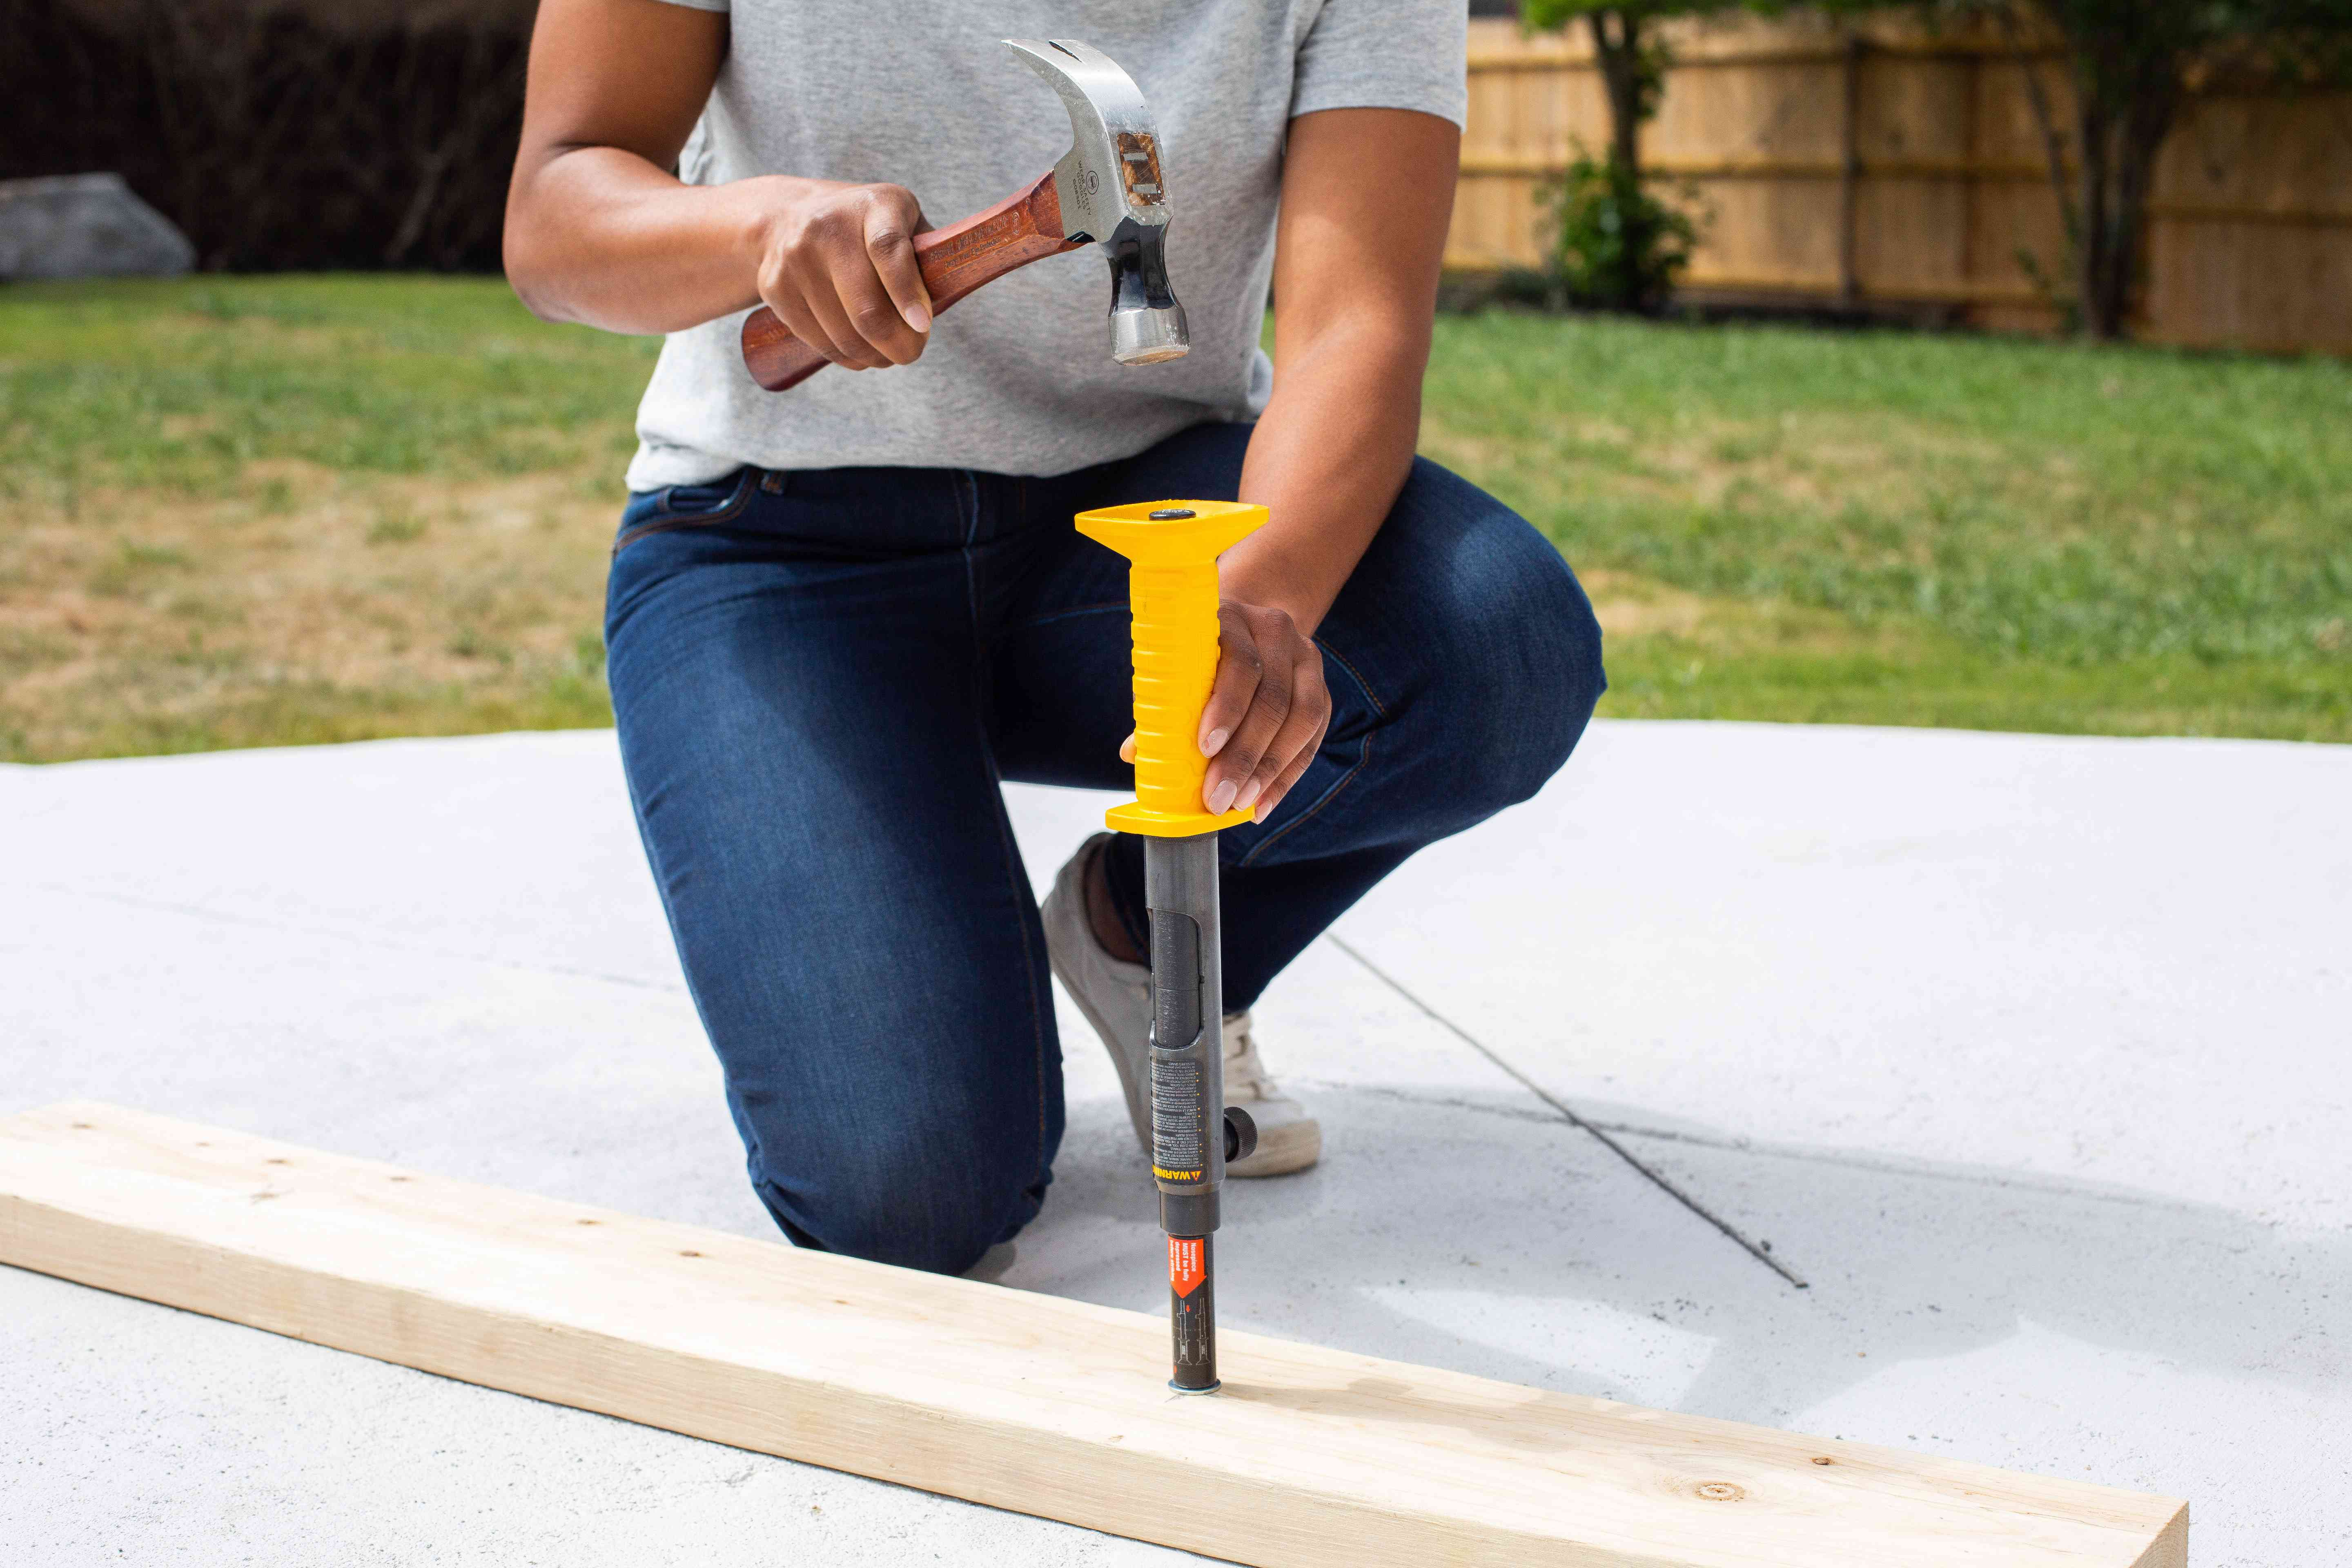 Hammer striking the concrete nail gun from above on wooden board